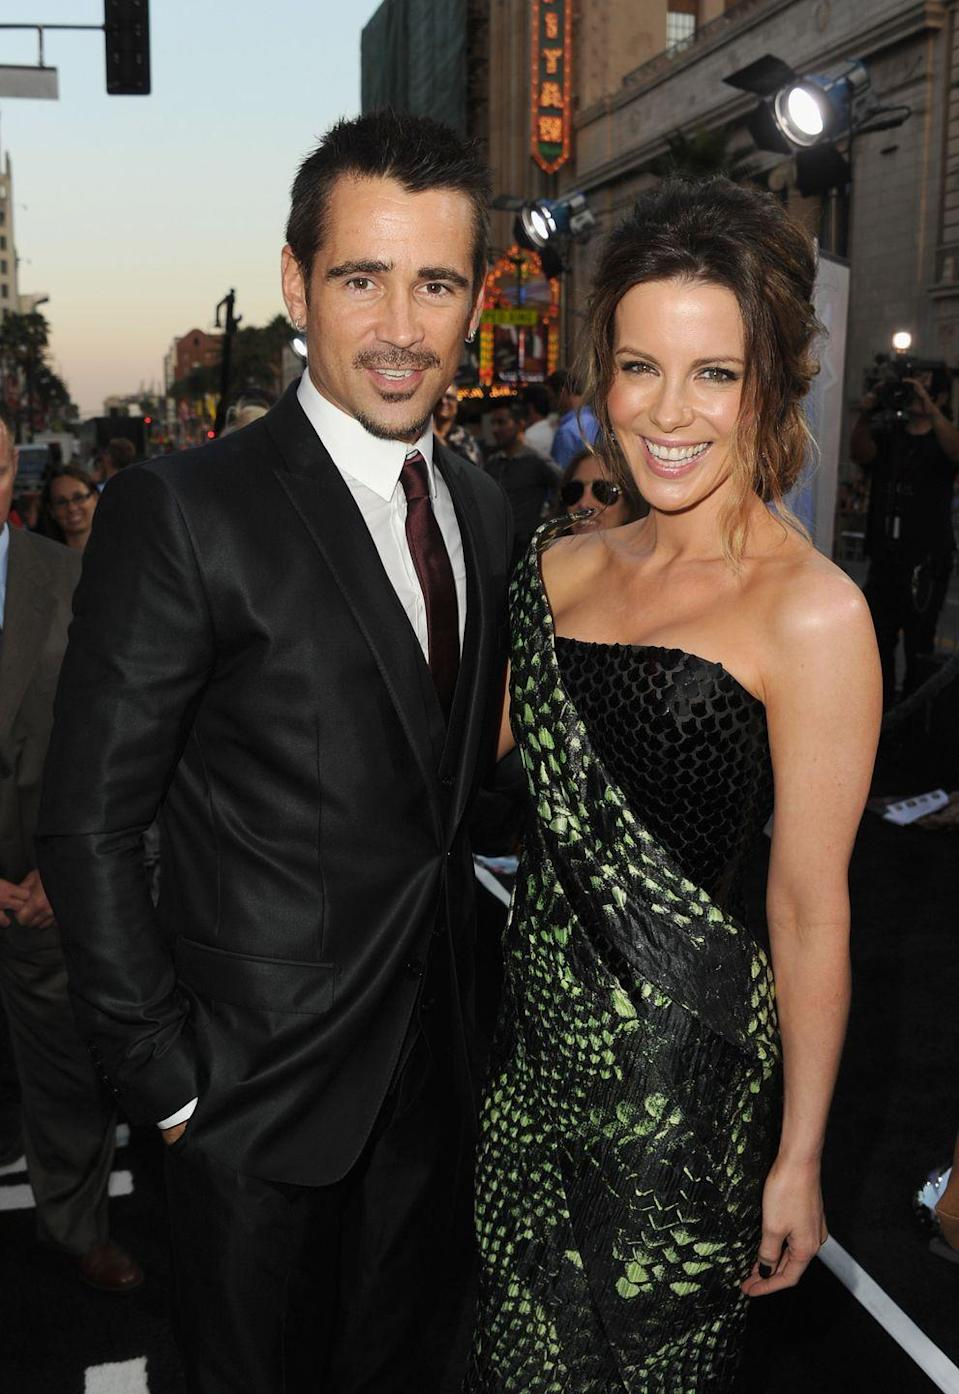 "<p>Locking lips with your costars is totally a normal part of the job, but when the director happens to be married to one of the movie's stars things can get complicated! Just ask Colin Farrell. Talking to TV host <a href=""https://www.youtube.com/watch?v=LYAvYqsT2QE"" rel=""nofollow noopener"" target=""_blank"" data-ylk=""slk:Conan O'Brien"" class=""link rapid-noclick-resp"">Conan O'Brien</a>, he revealed how weird it was to kiss Beckinsale for <em>Total Recall</em>.</p><p> ""She's actually the director's wife. She's married to the director. [It was] moderately uncomfortable,"" he said. ""Kissing her was a little bit dodgy 'cause the director, her husband, wasn't kind enough to leave the room.""</p>"